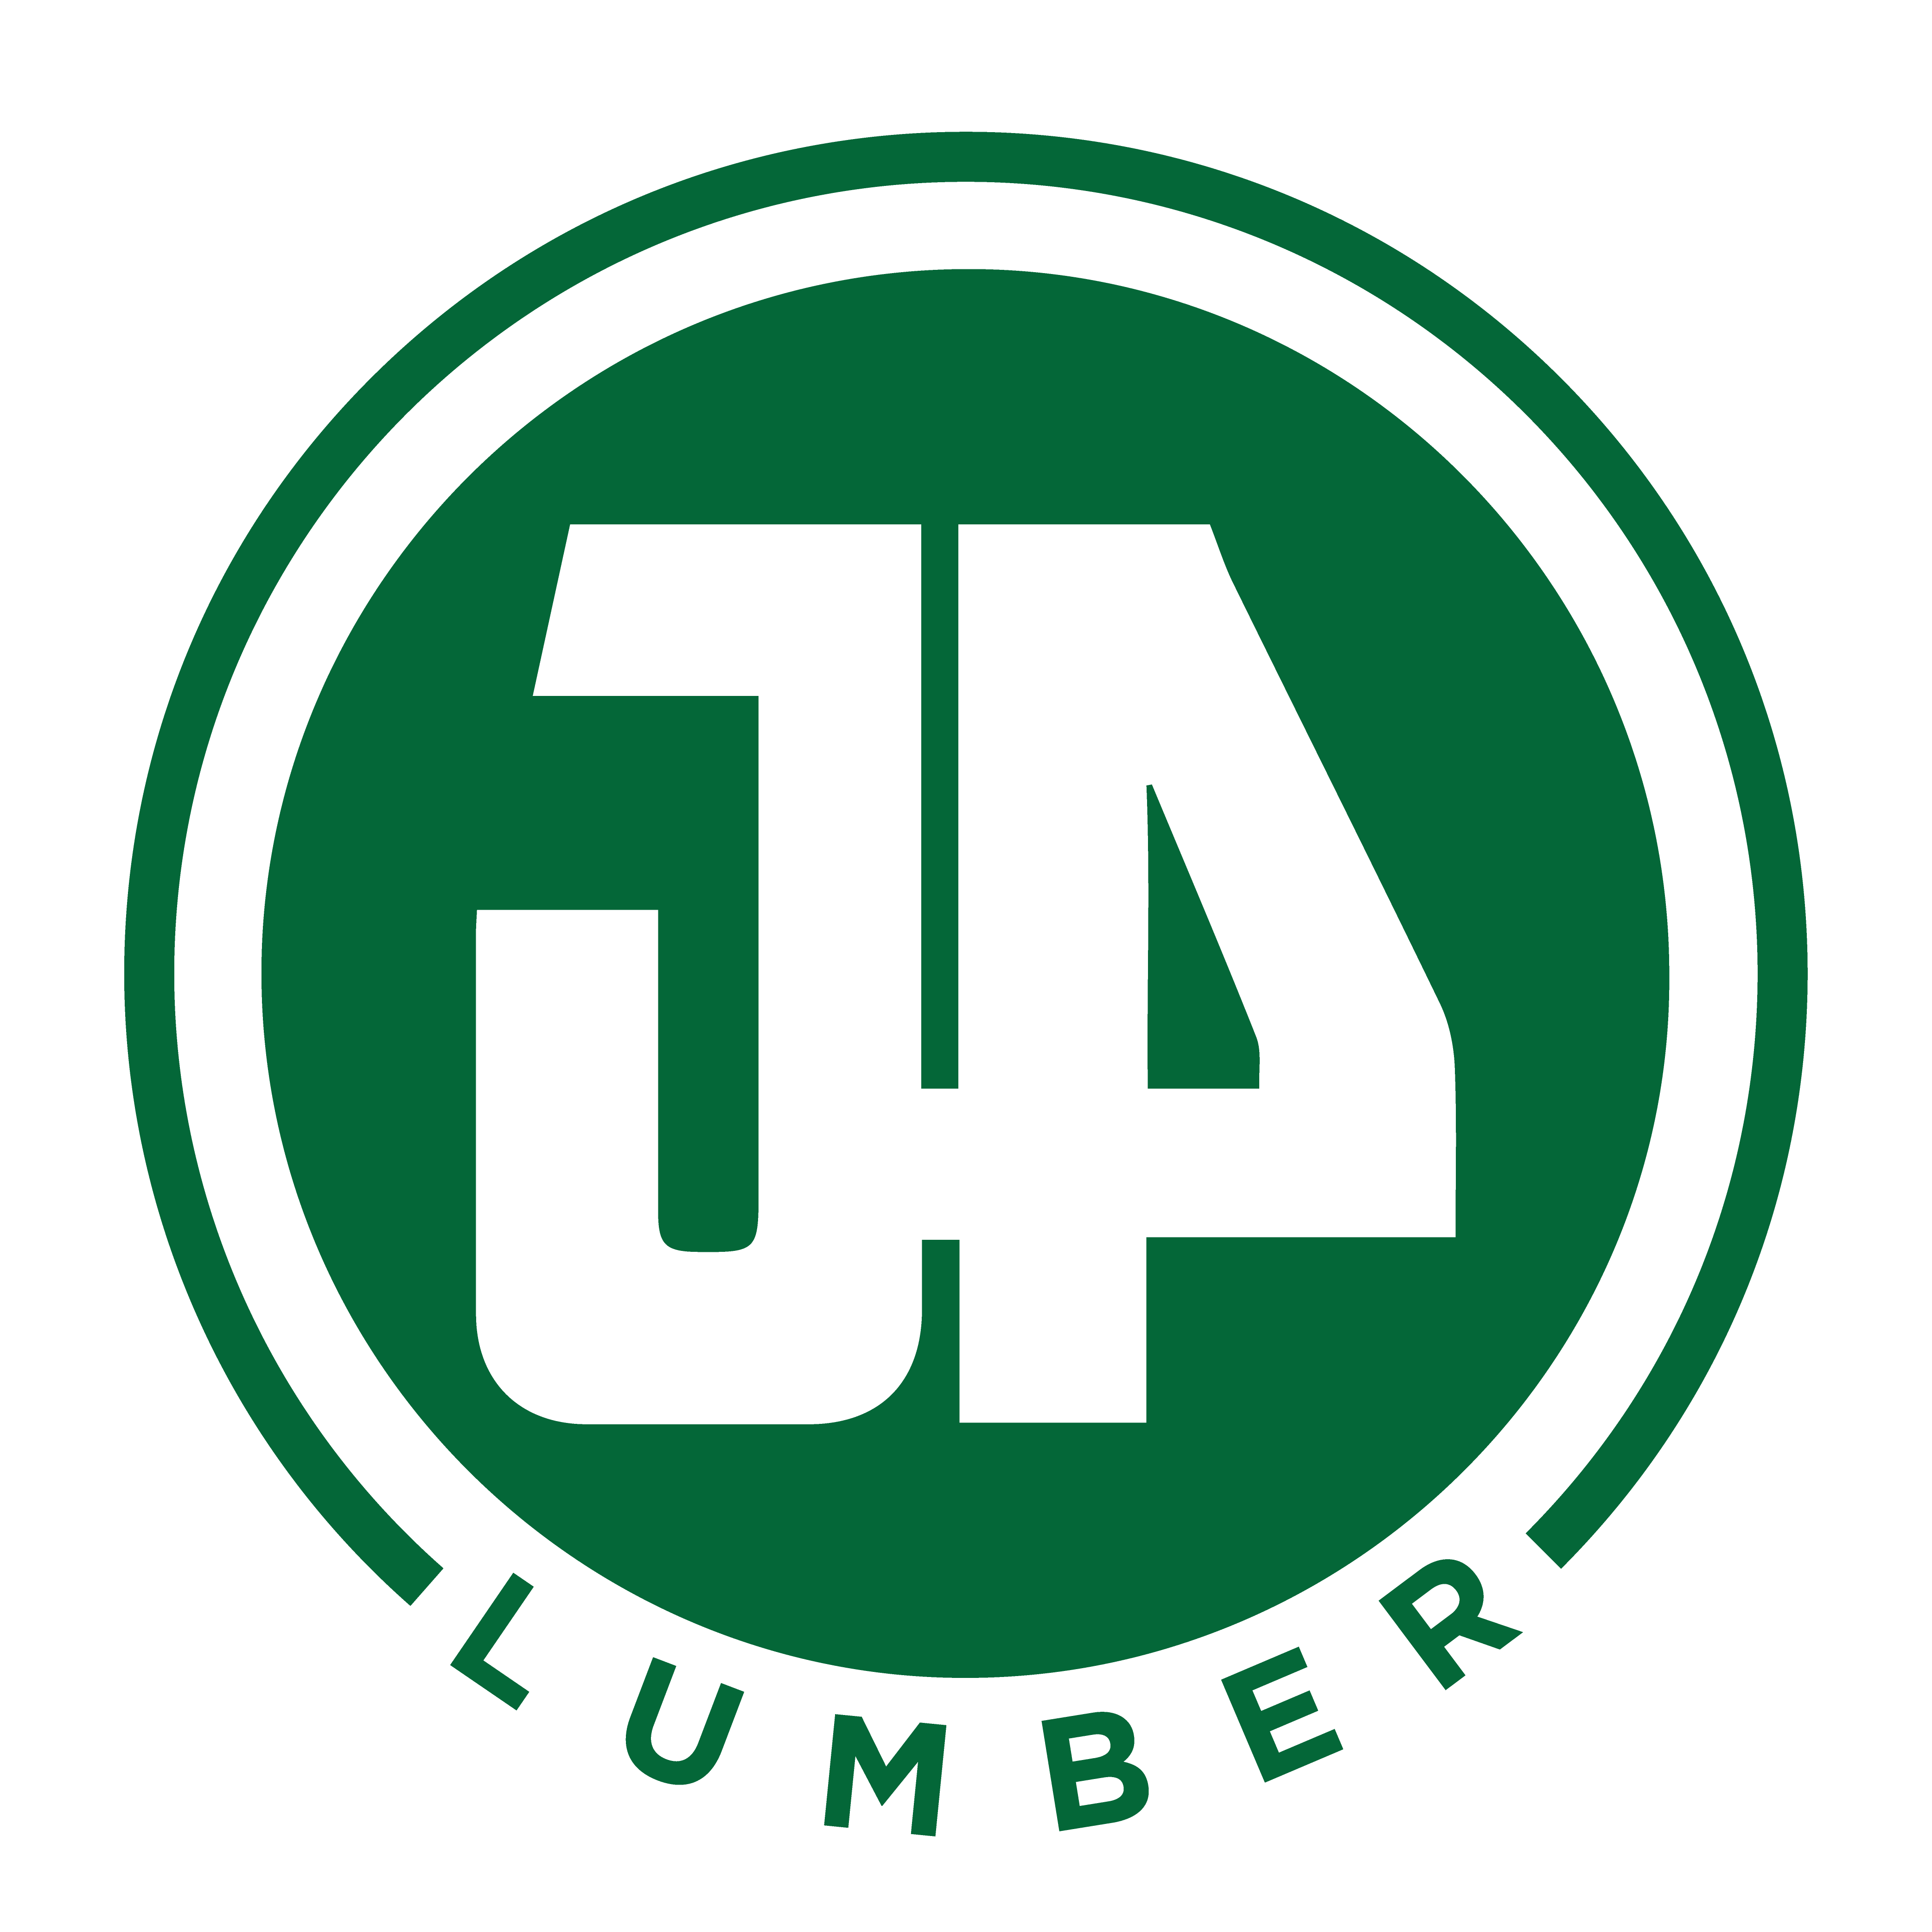 New Wholesale Lumber Supplier in Houston, TX Now Offering Dimensional Eucalyptus Hardwood, Southern Yellow Pine (SYP) And Heat Treated (HT) & Air Dried (AD) Products